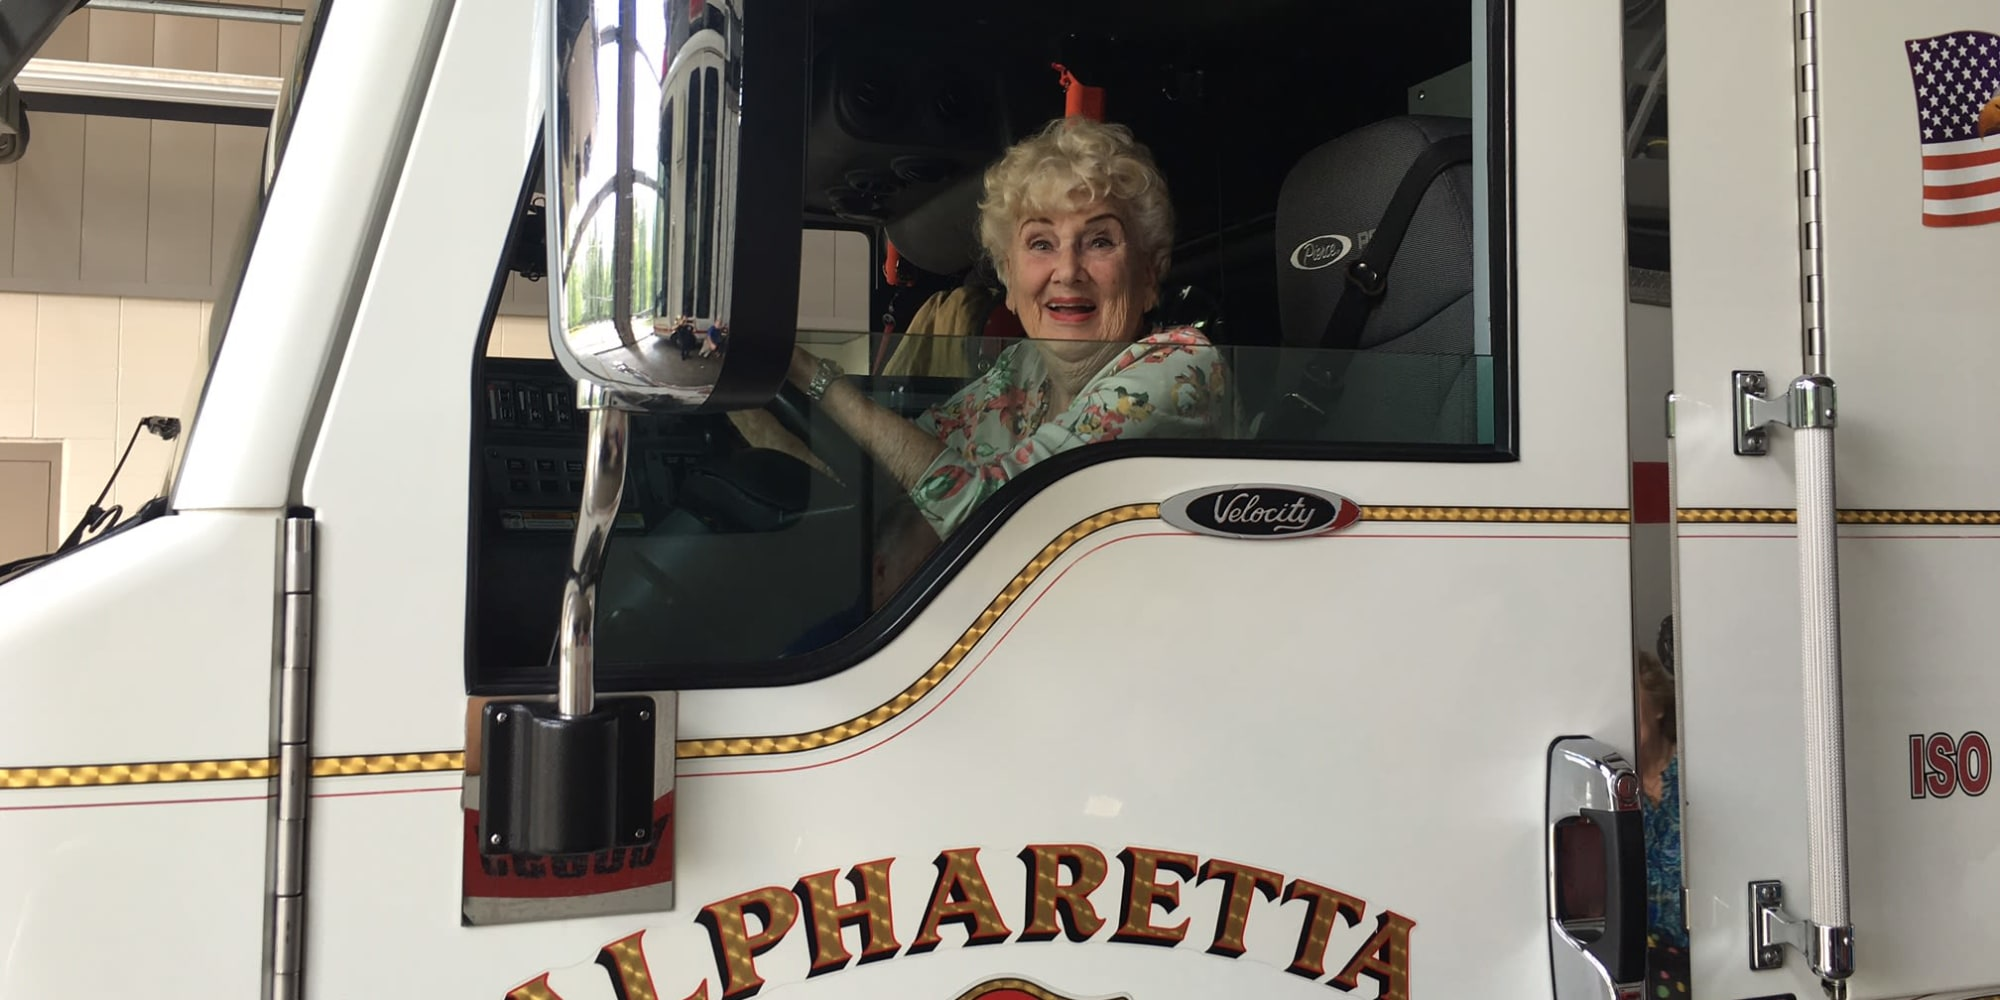 An excited resident from Cottonwood Estates Gracious Retirement Living in Alpharetta, Georgia in the driver's seat of a firetruck